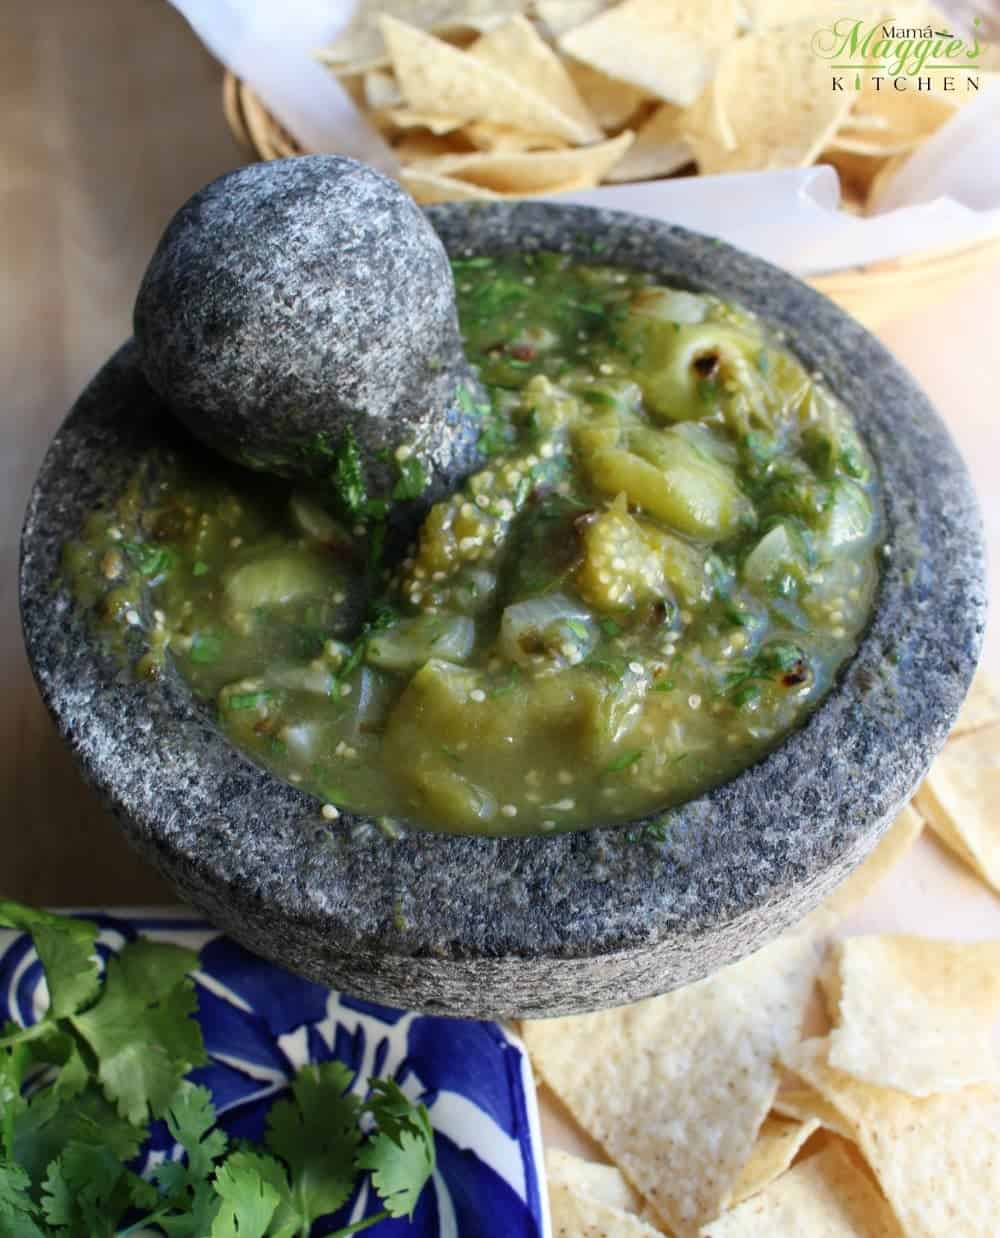 Molcajete Salsa Verde surrounded by corn tortilla chips and green cilantro.